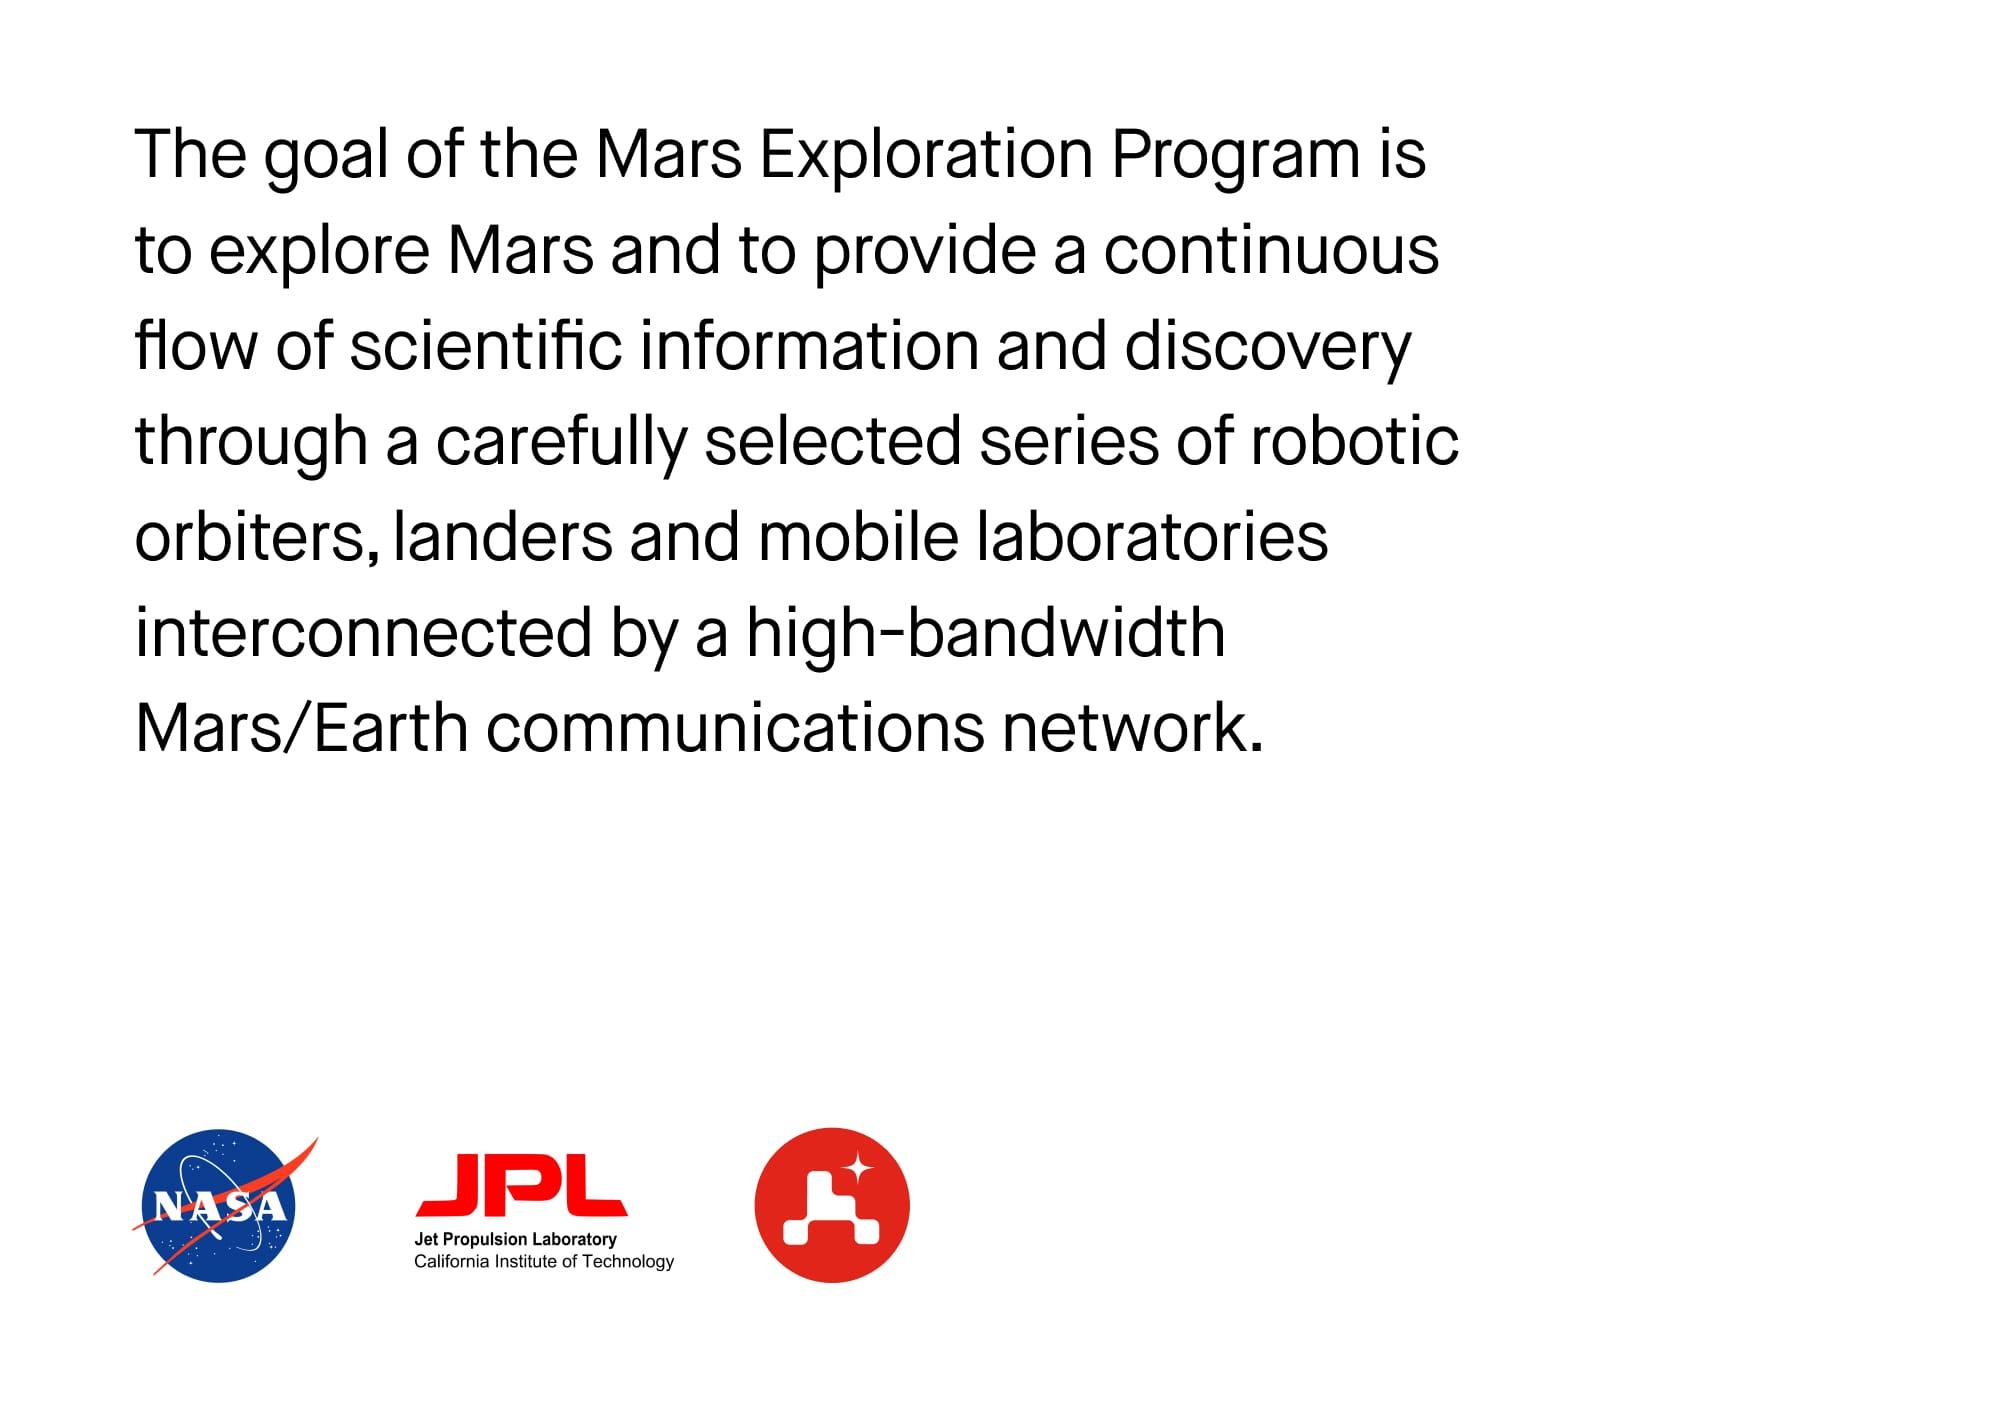 logo_family_nasa+JPL+Mars